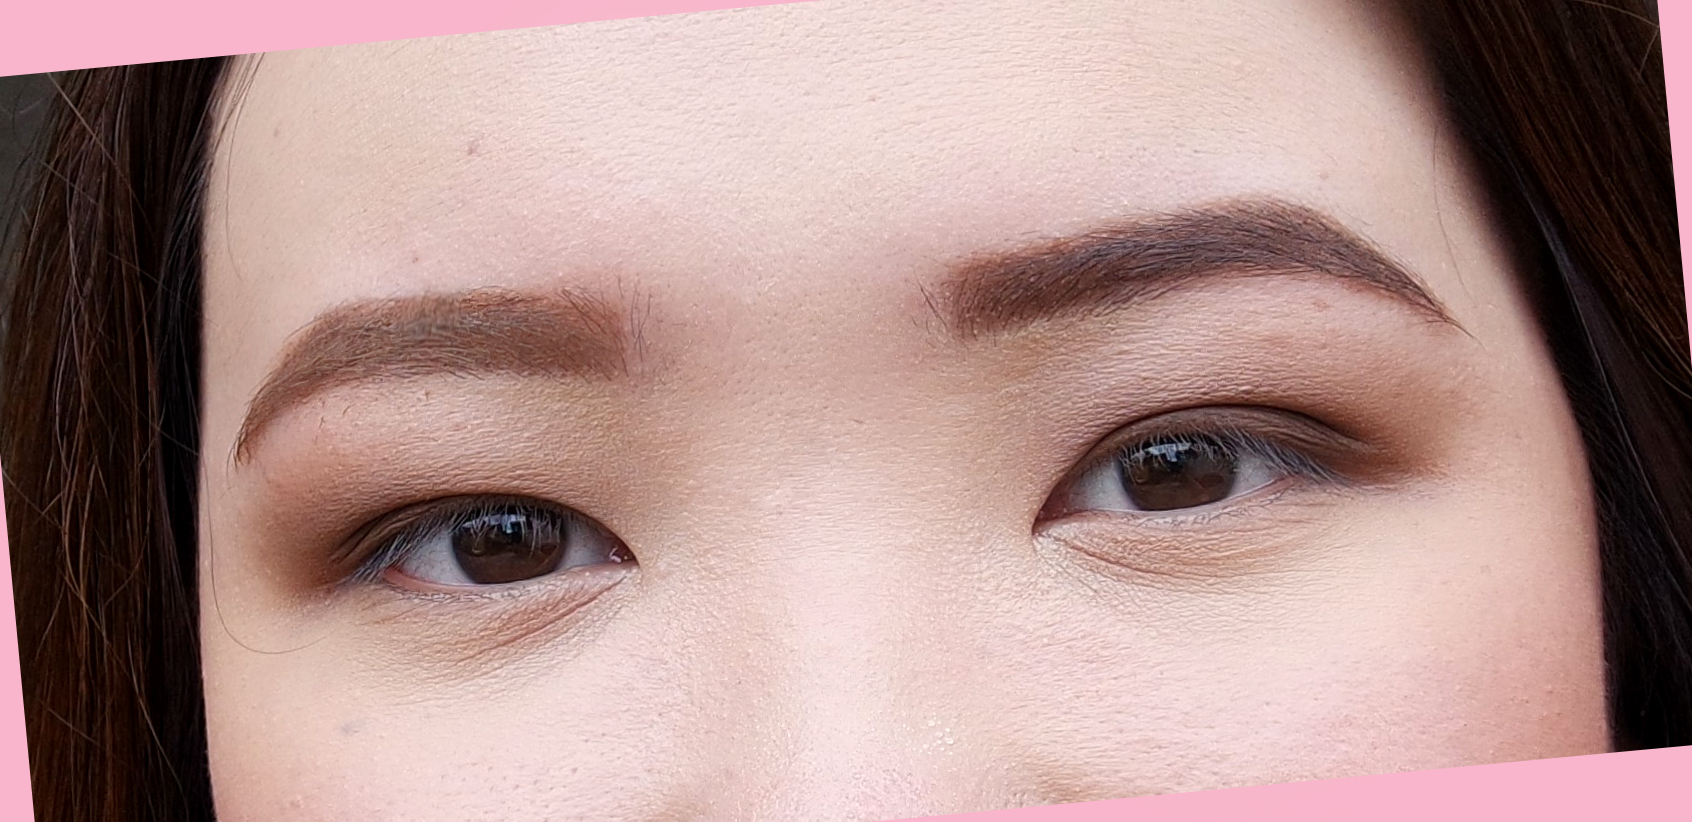 My right brow looks lighter and not as severe as the one on the left